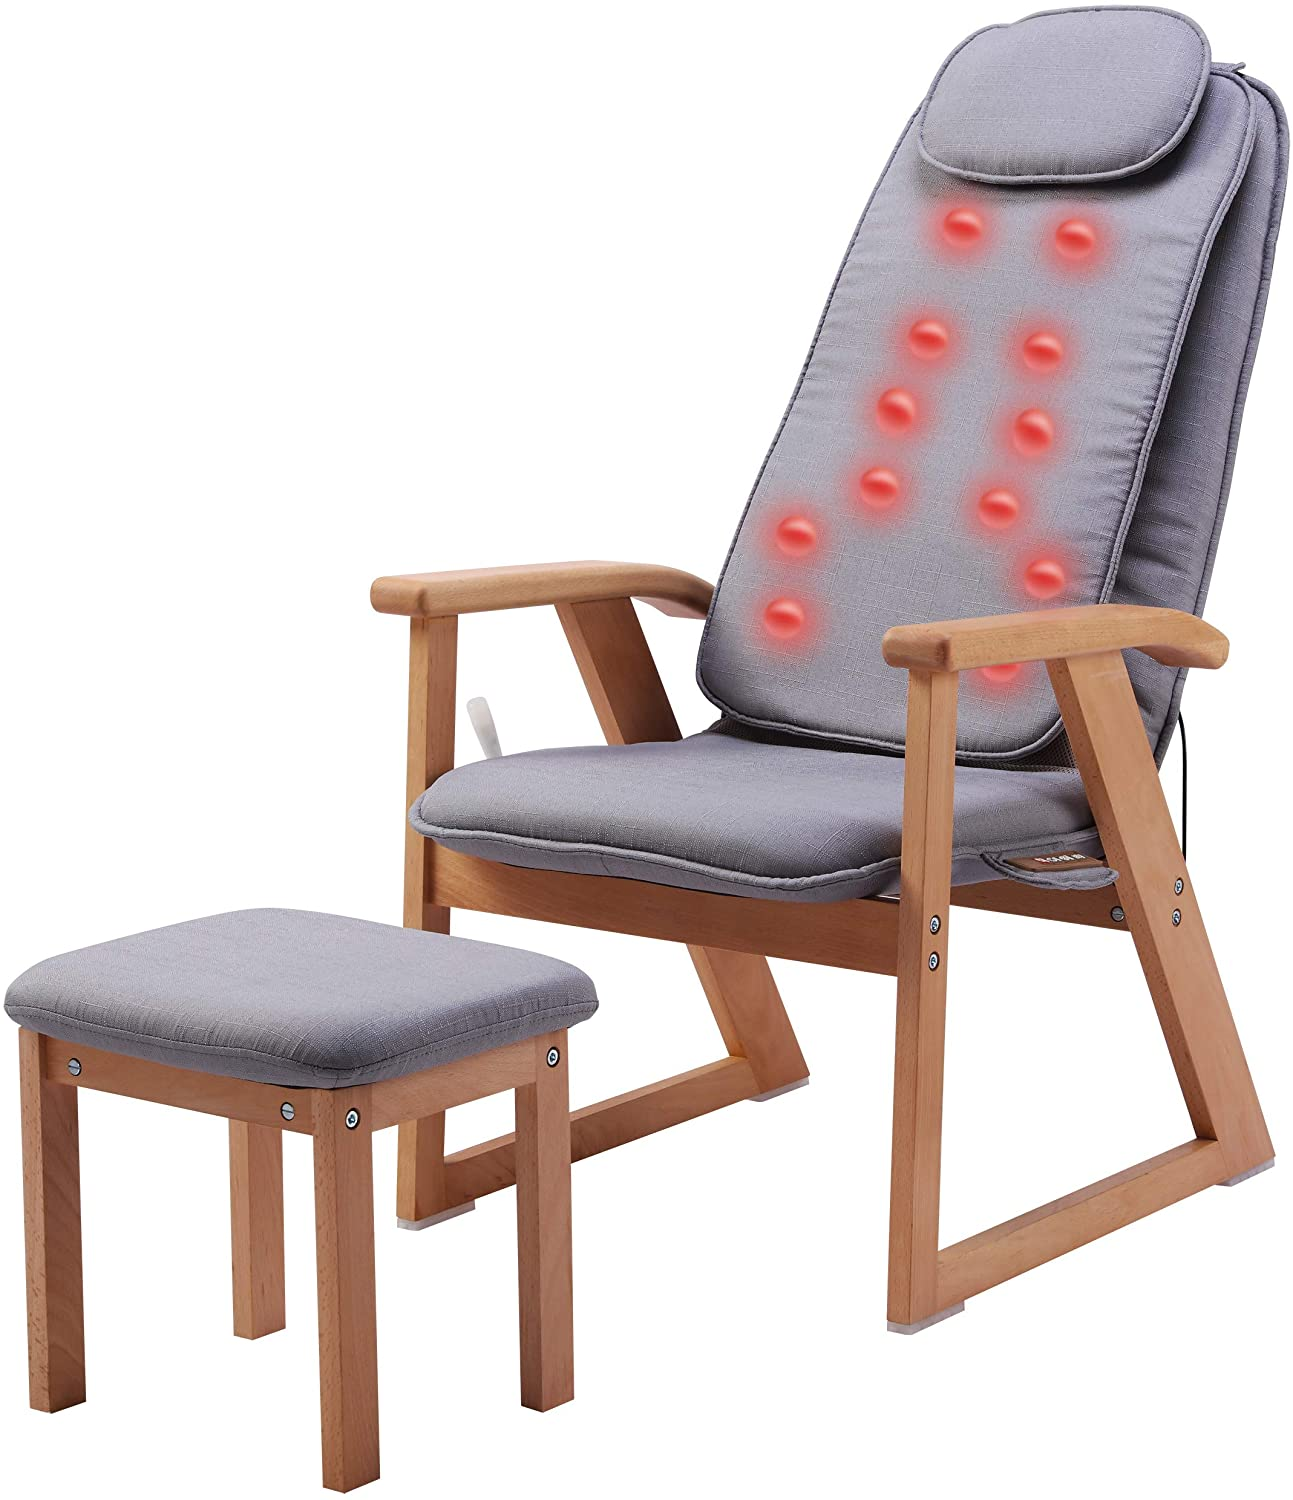 MAS-AGEE Shiatsu Back Massage Chair